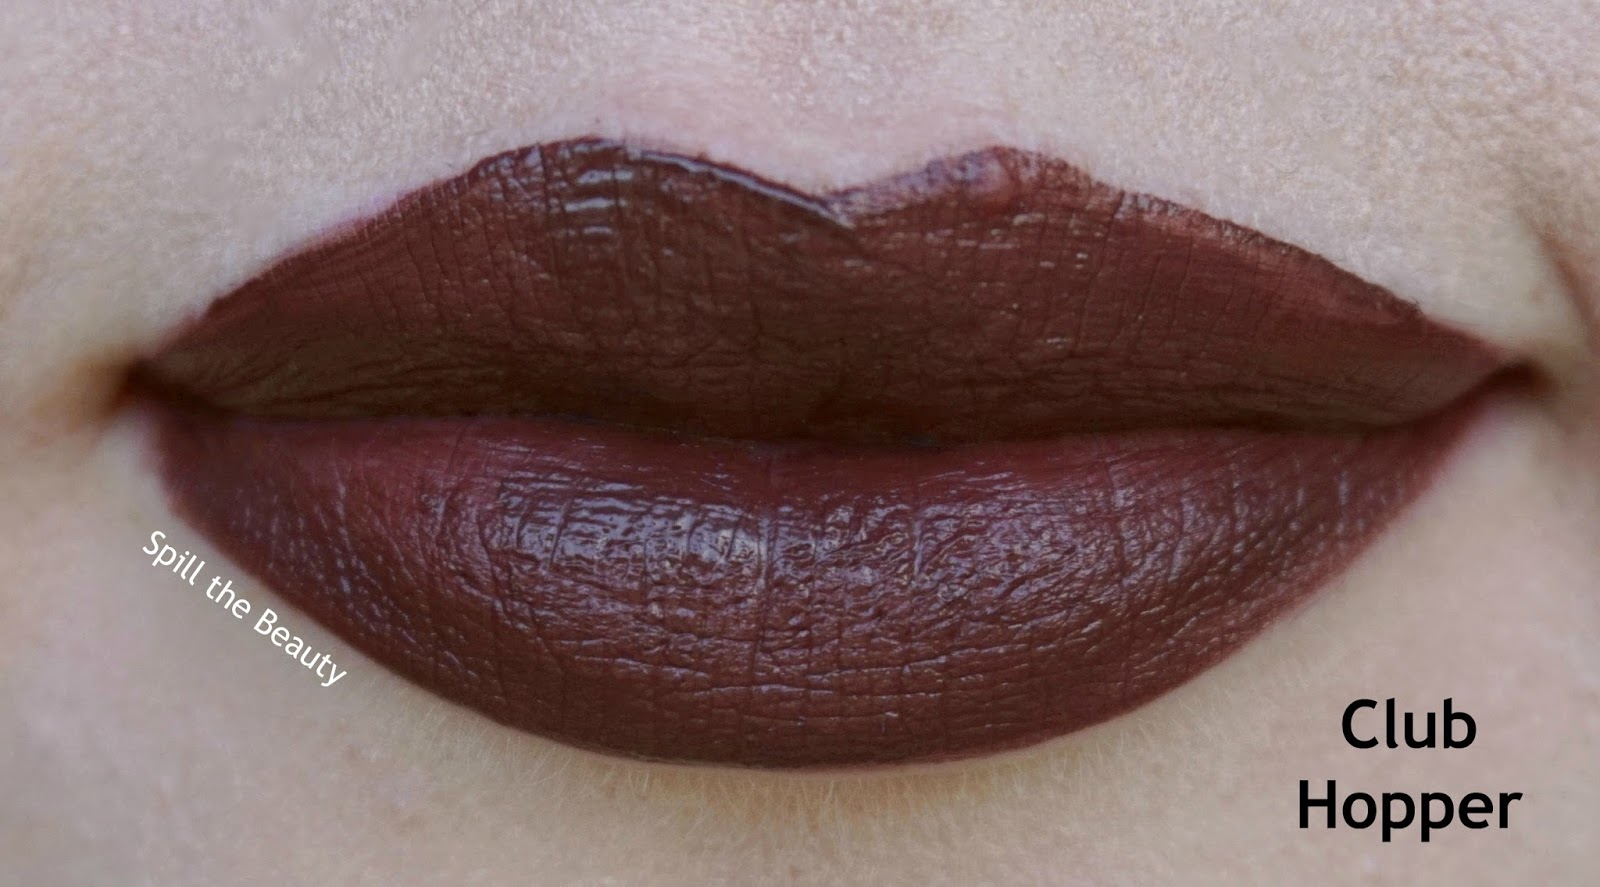 nyx liquid suede cream lipstick respect the pink club hopper review swatches